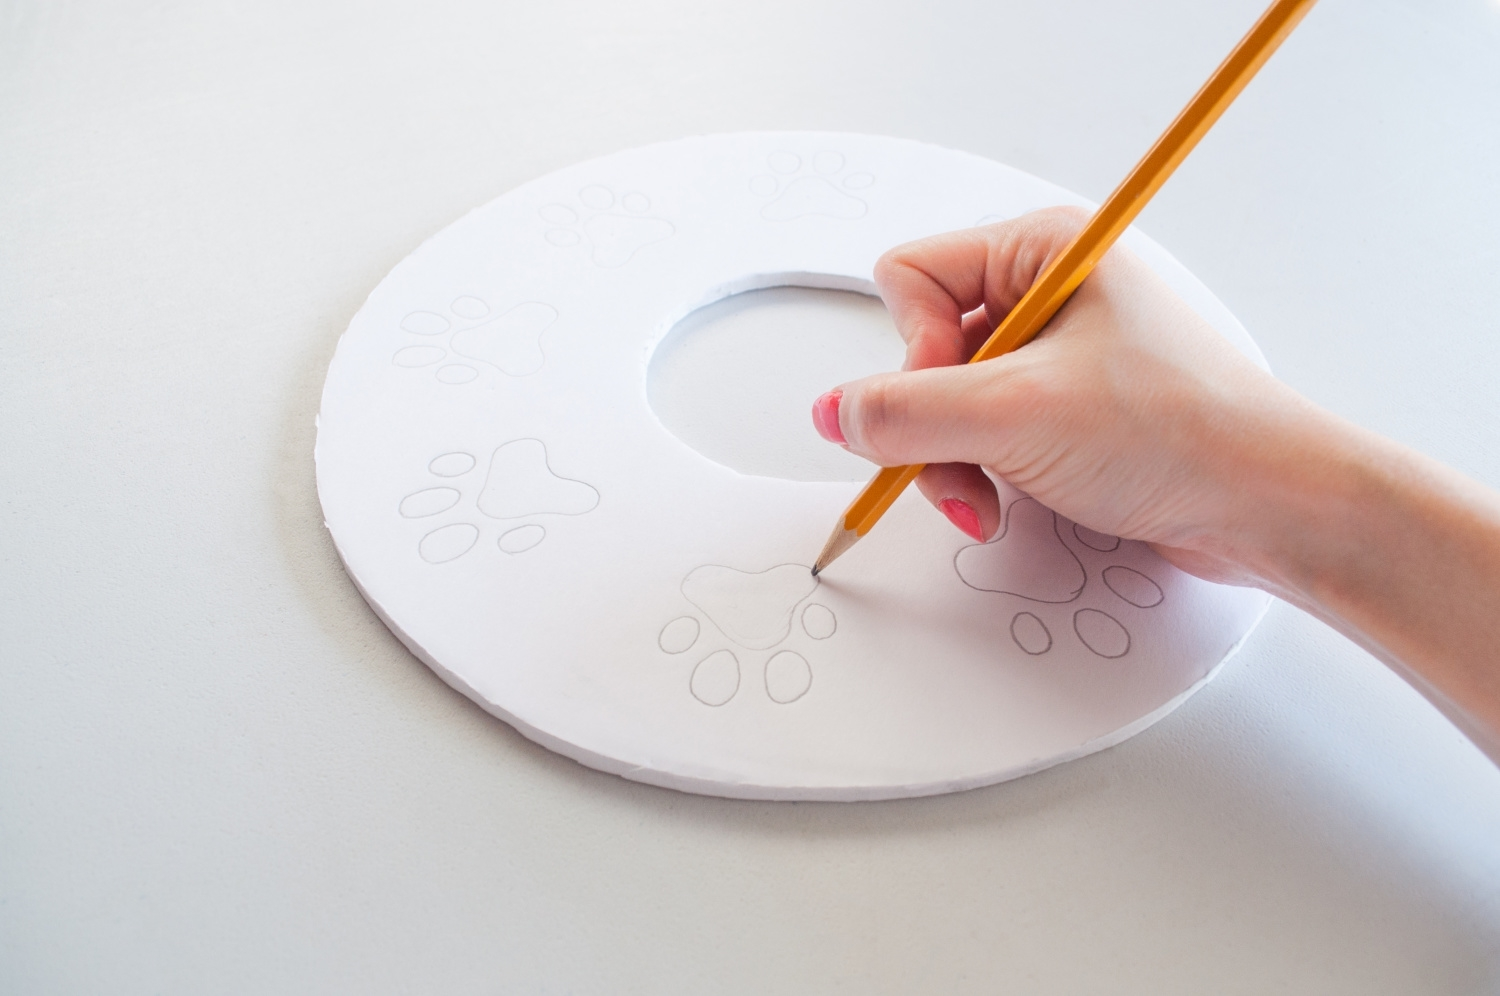 Cut out circle and sketch pawprints